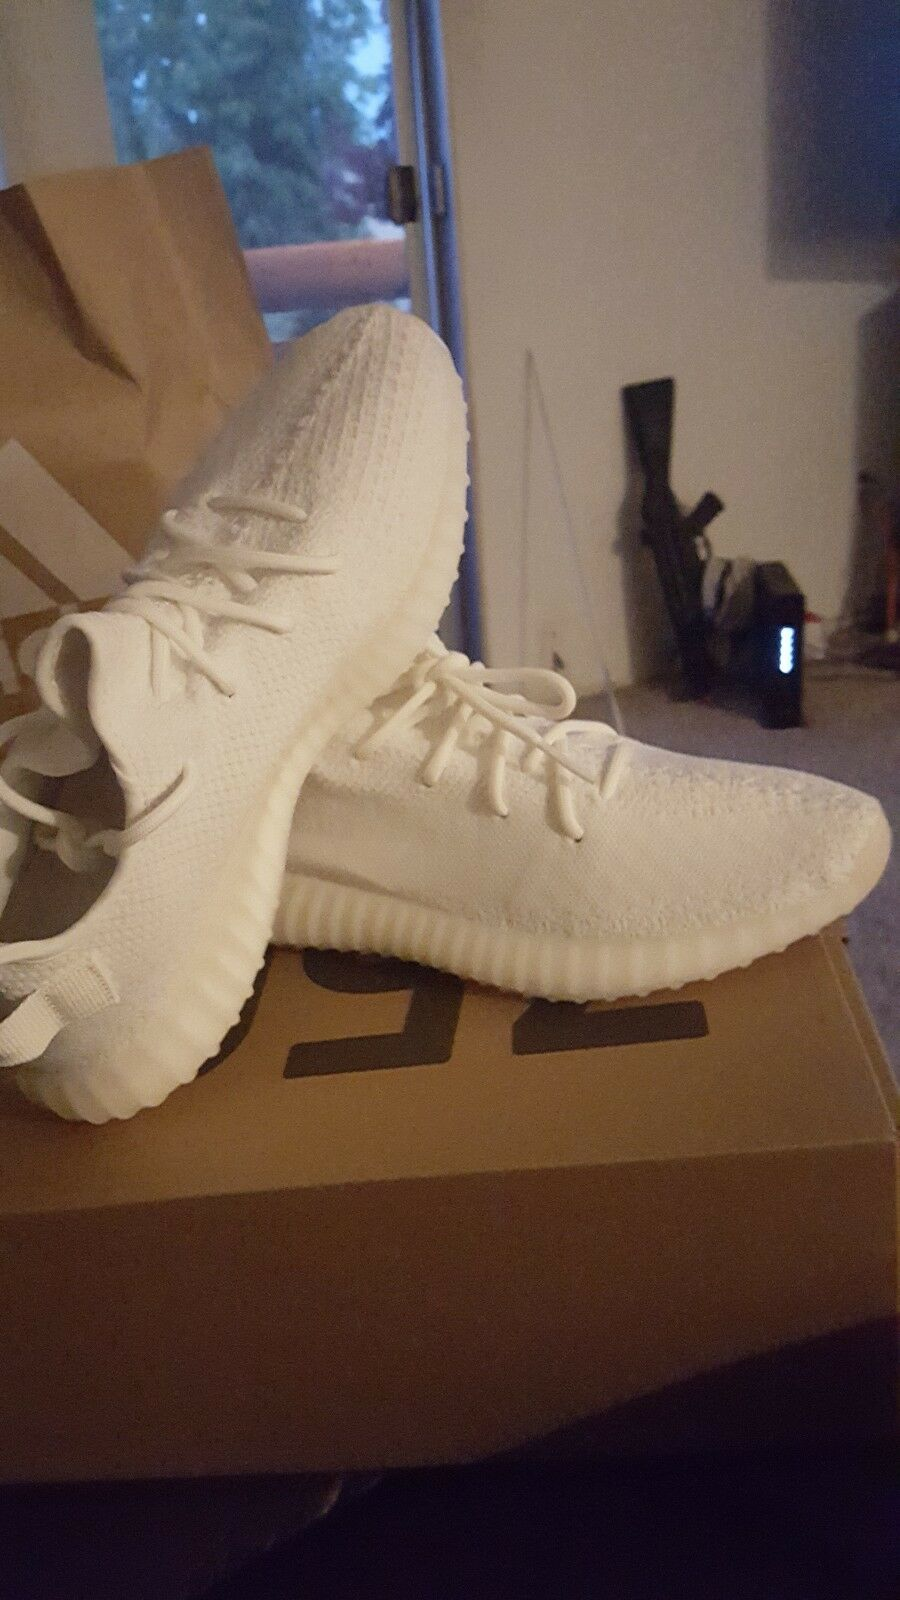 yeezy 350 v2 dead stock . 100% authentic Never Been Worn Come With reciept